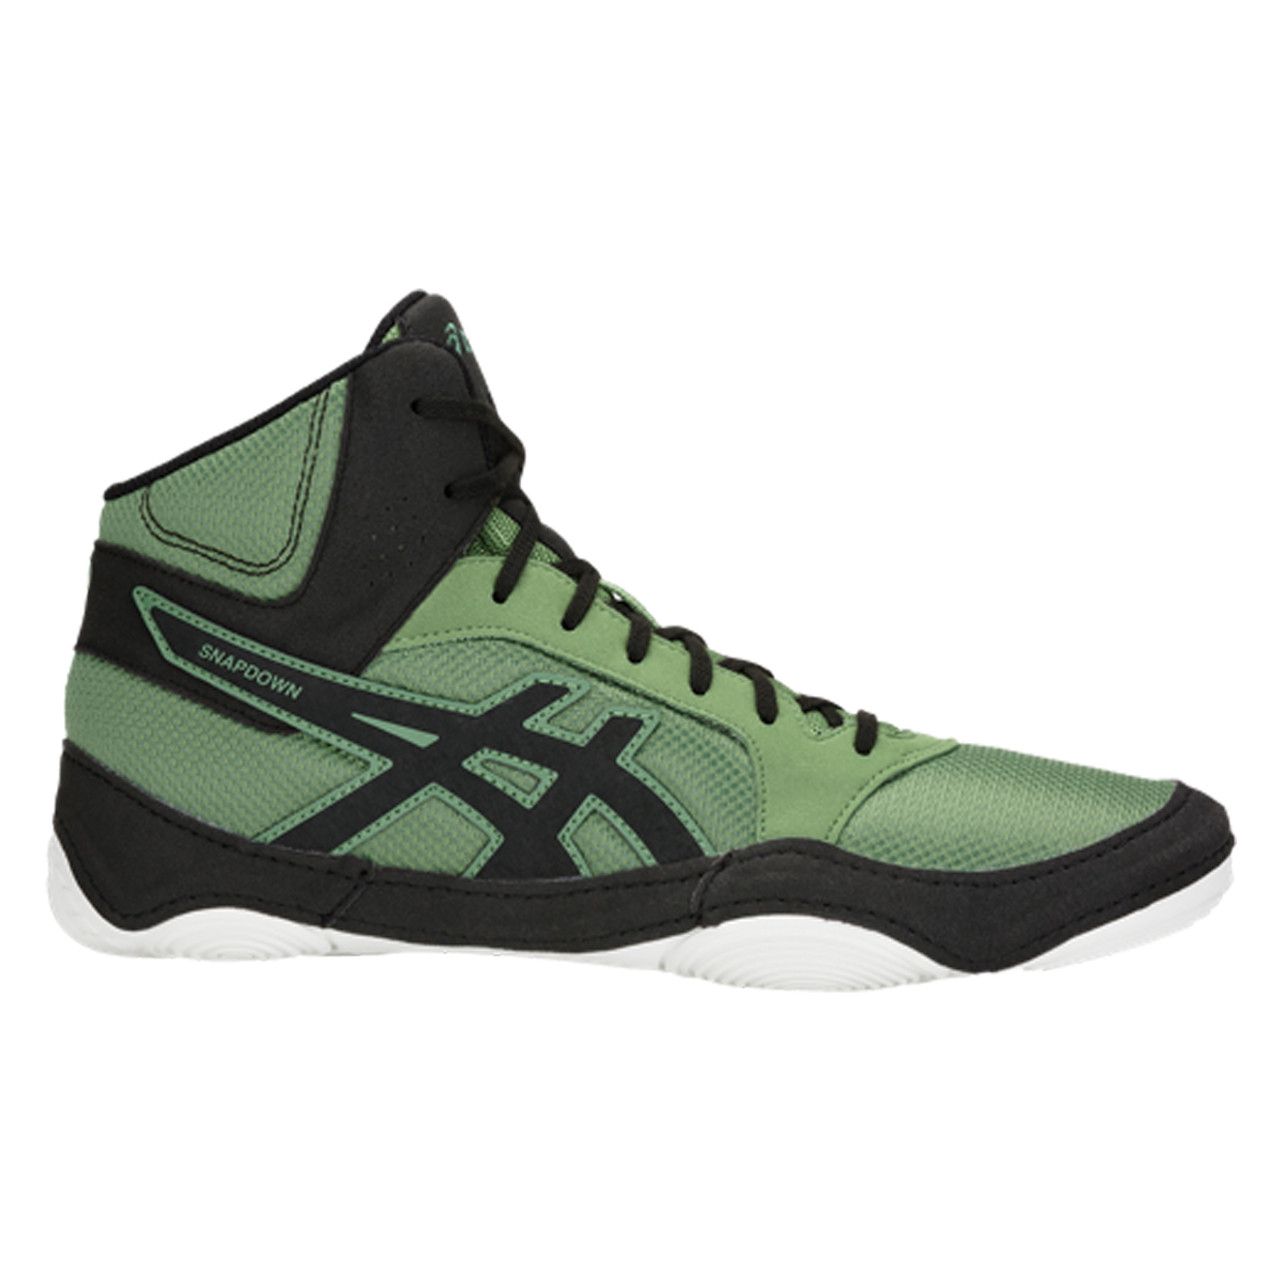 meet 317a0 0143d Asics Snapdown 2 Men s Wrestling Shoes - Green, Black